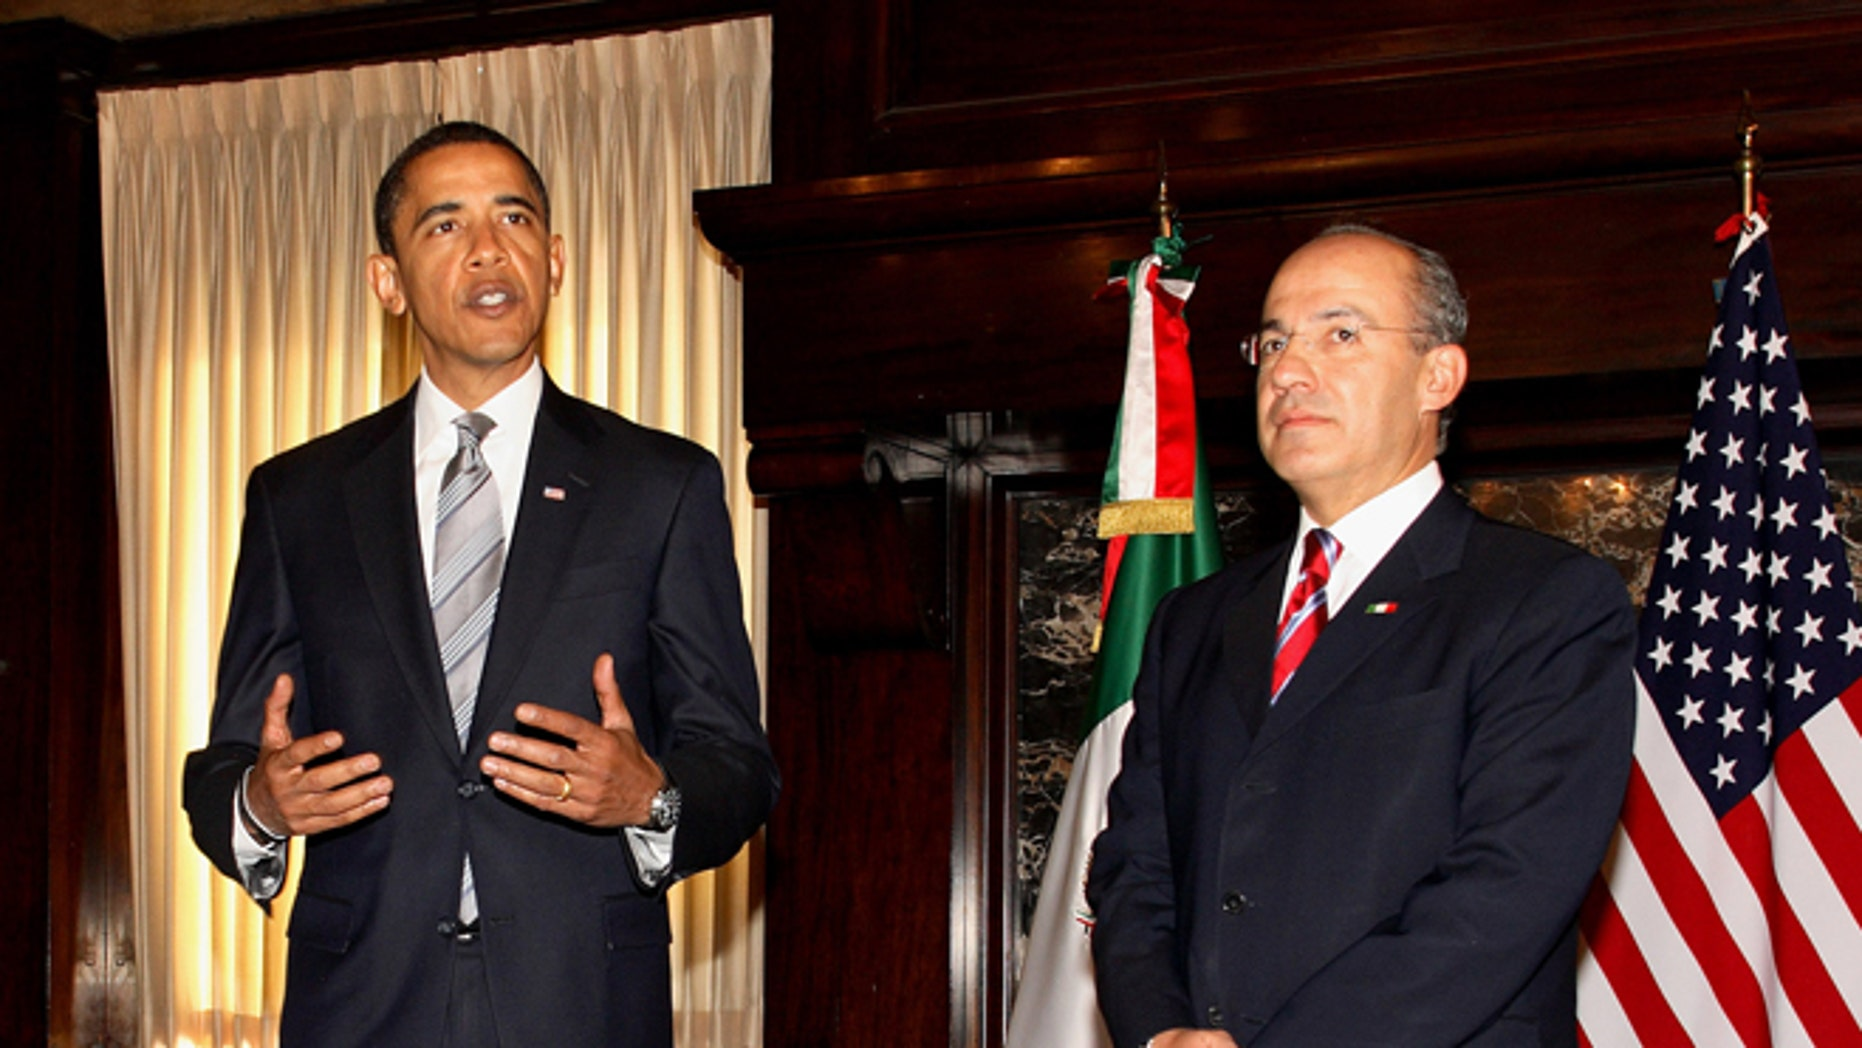 WASHINGTON - JANUARY 12: U.S. President-elect Barack Obama (L) meets with Mexican President Felipe Calderon at the Mexican Cultural Institute January 12, 2009 in Washington, DC. Calderon met with Obama eight days before he is to be inaugurated, and is to meet with U.S. President George W. Bush tomorrow.  (Photo by Martin H. Simon-Pool/Getty Images)